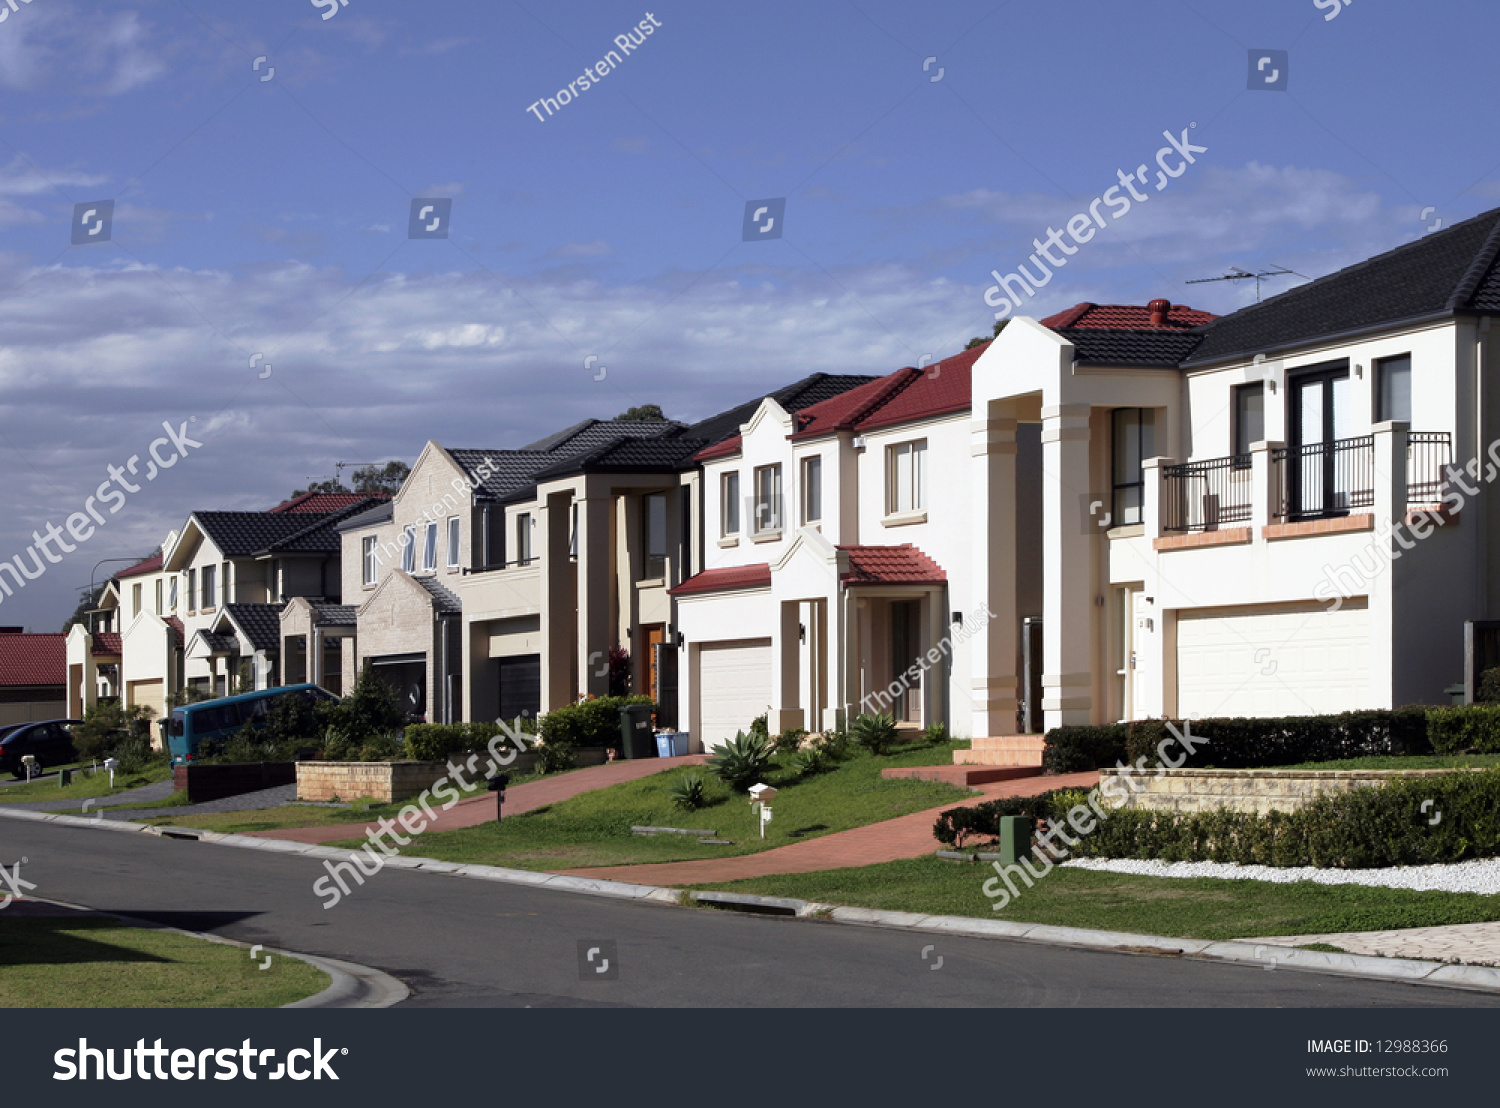 Suburban Street New Modern Houses Sydney Stock Photo 12988366 ... - ^